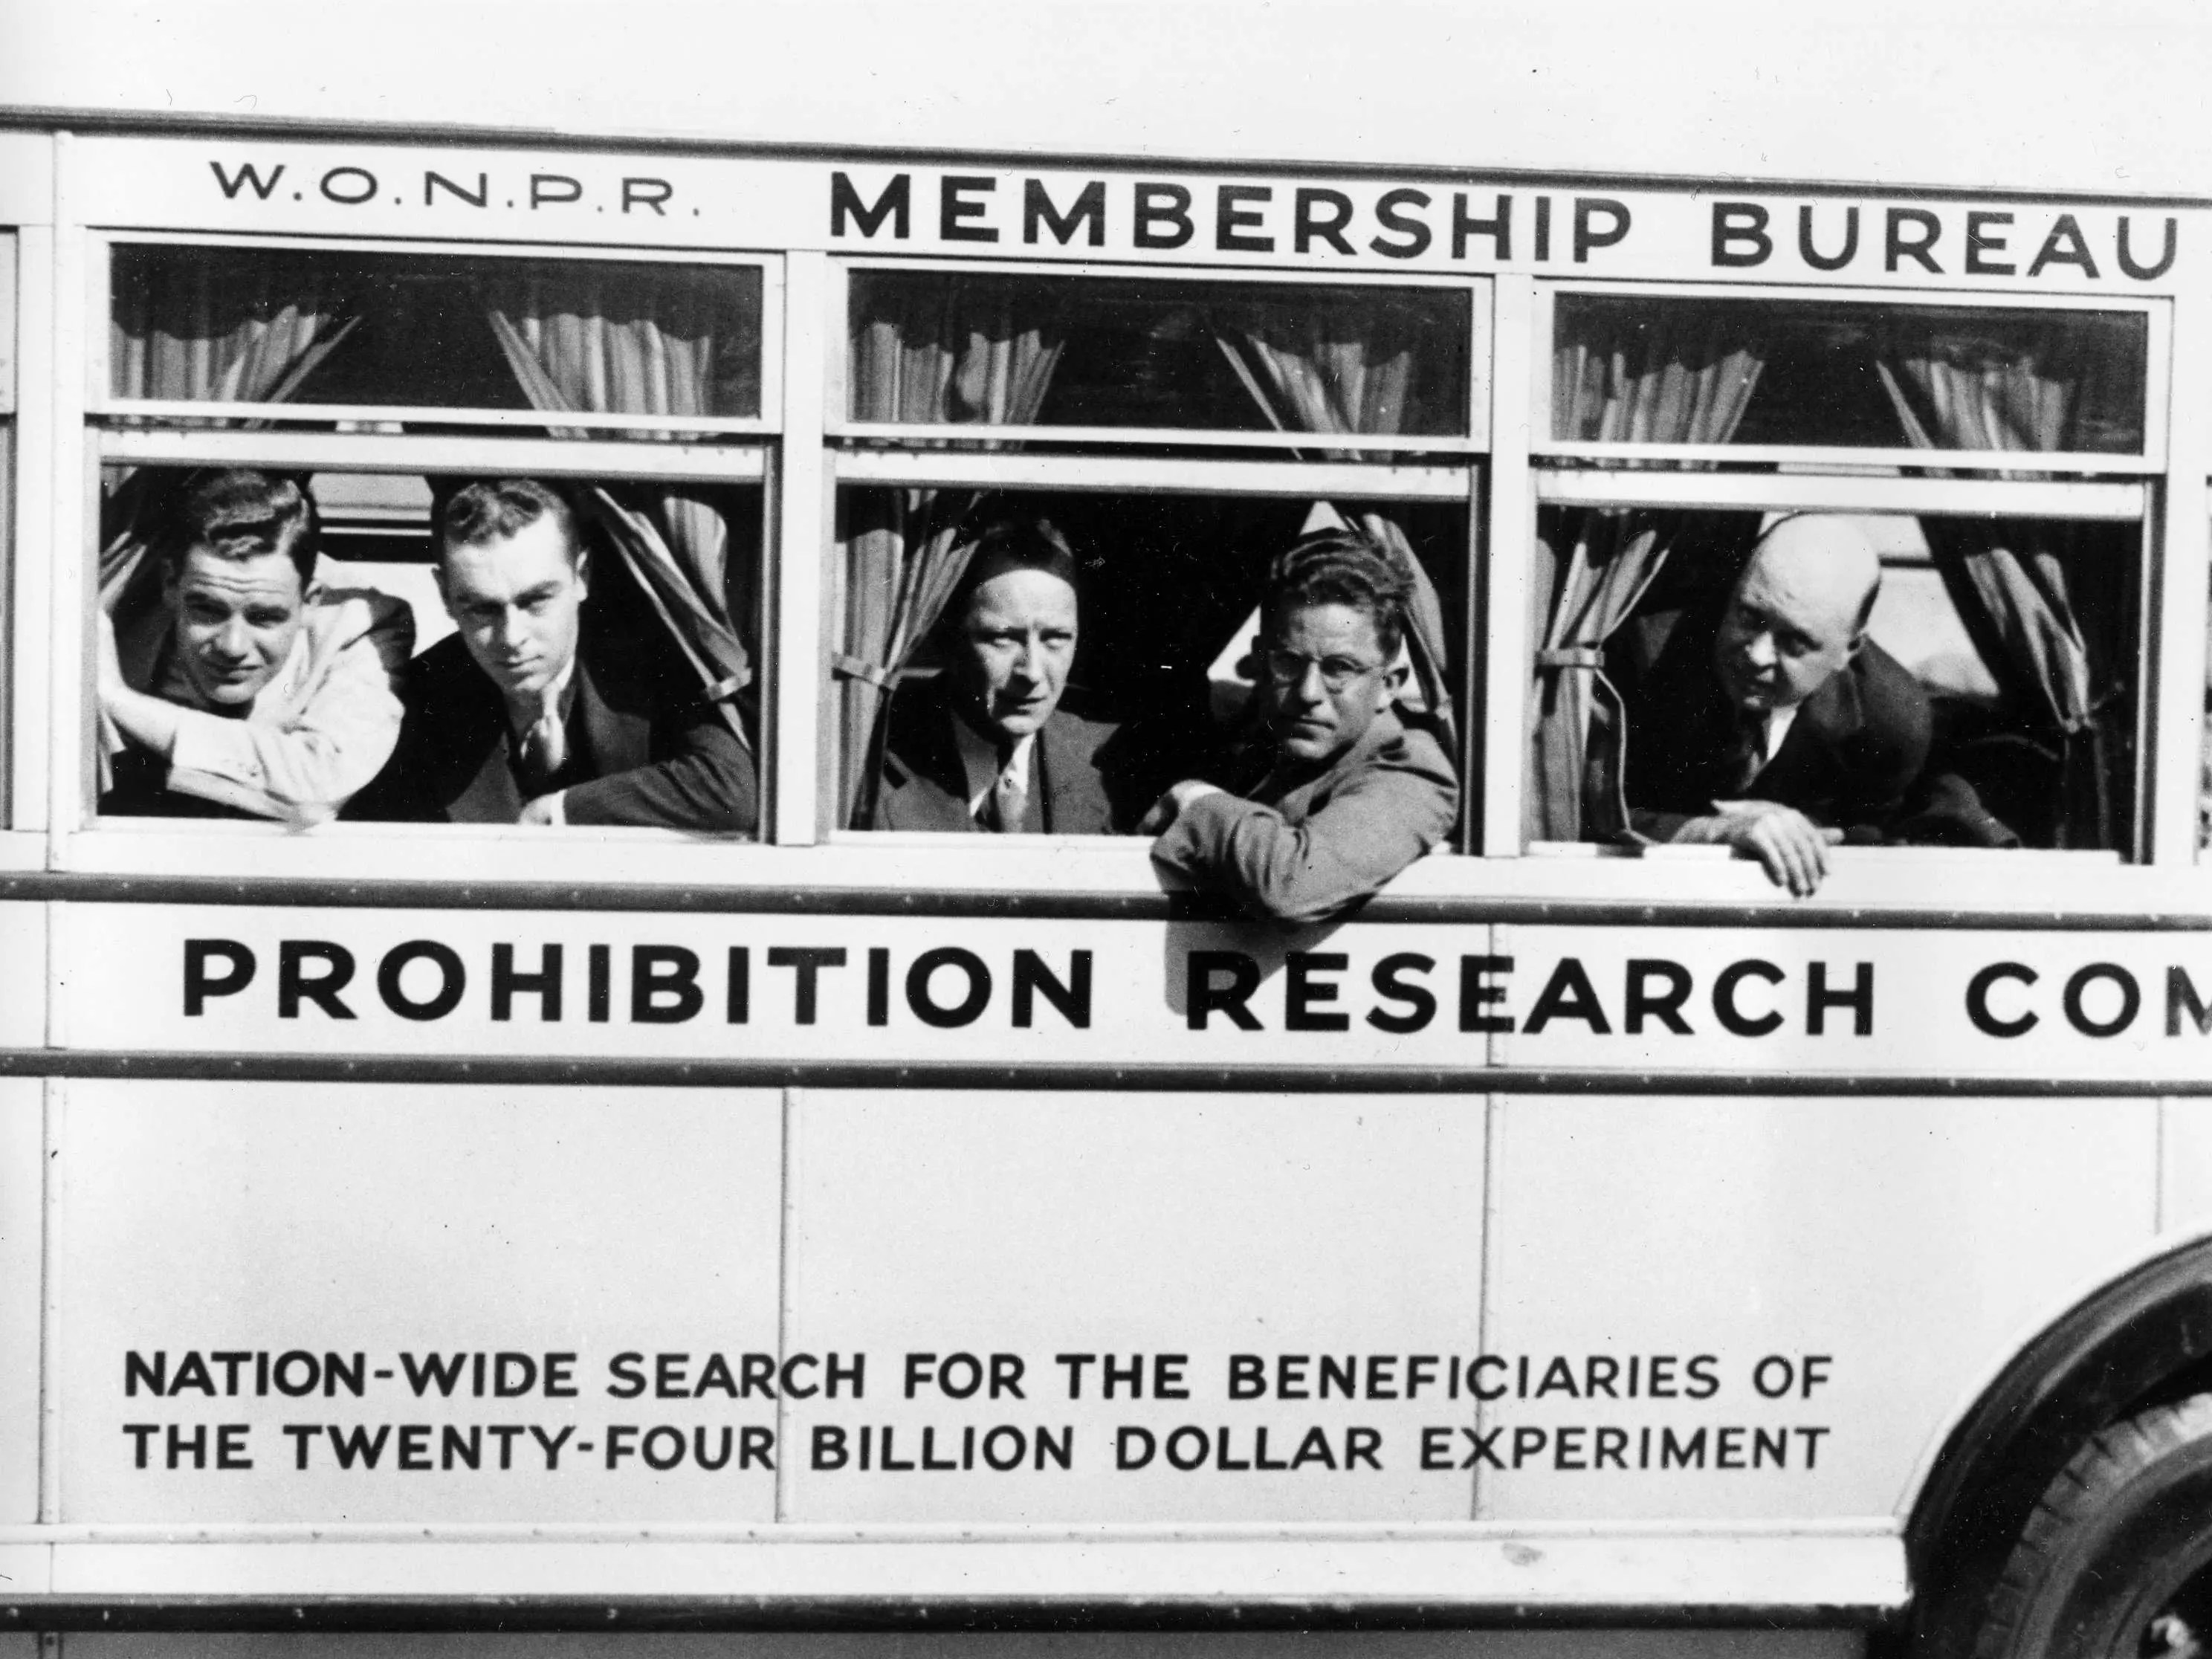 Prohibition Research Committee